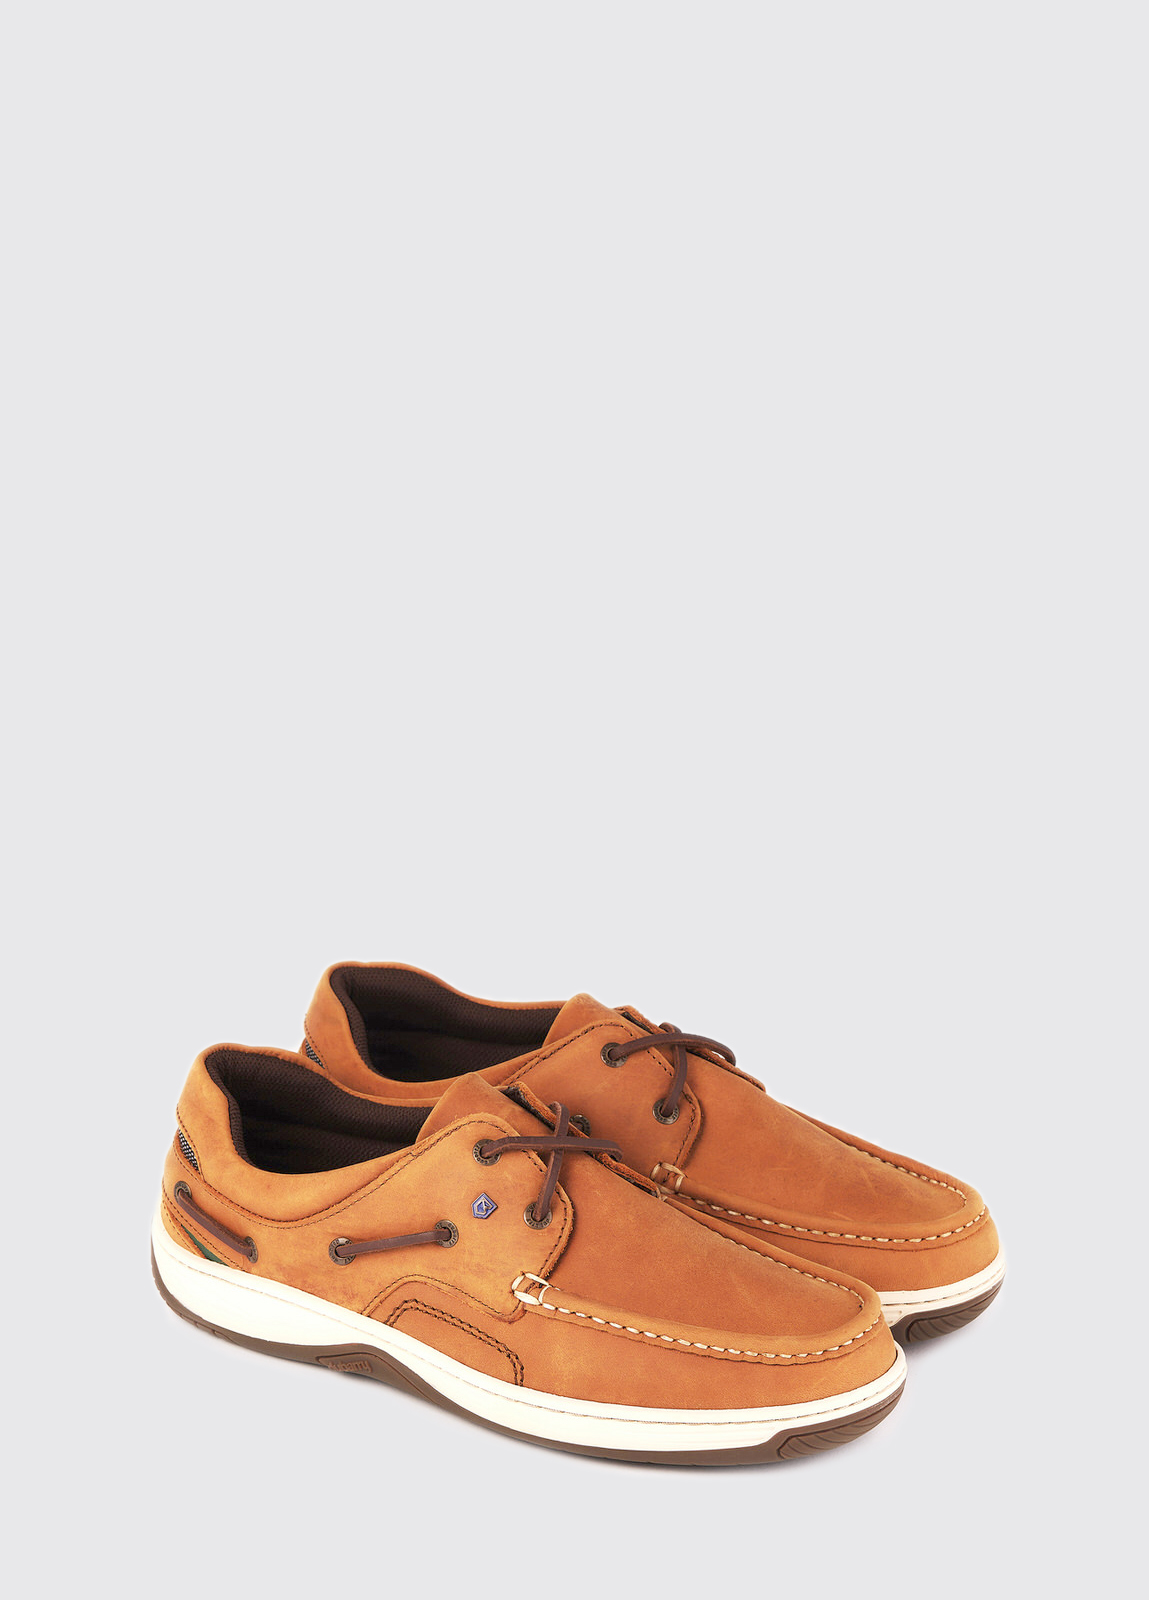 Navigator Deck Shoe - Whiskey